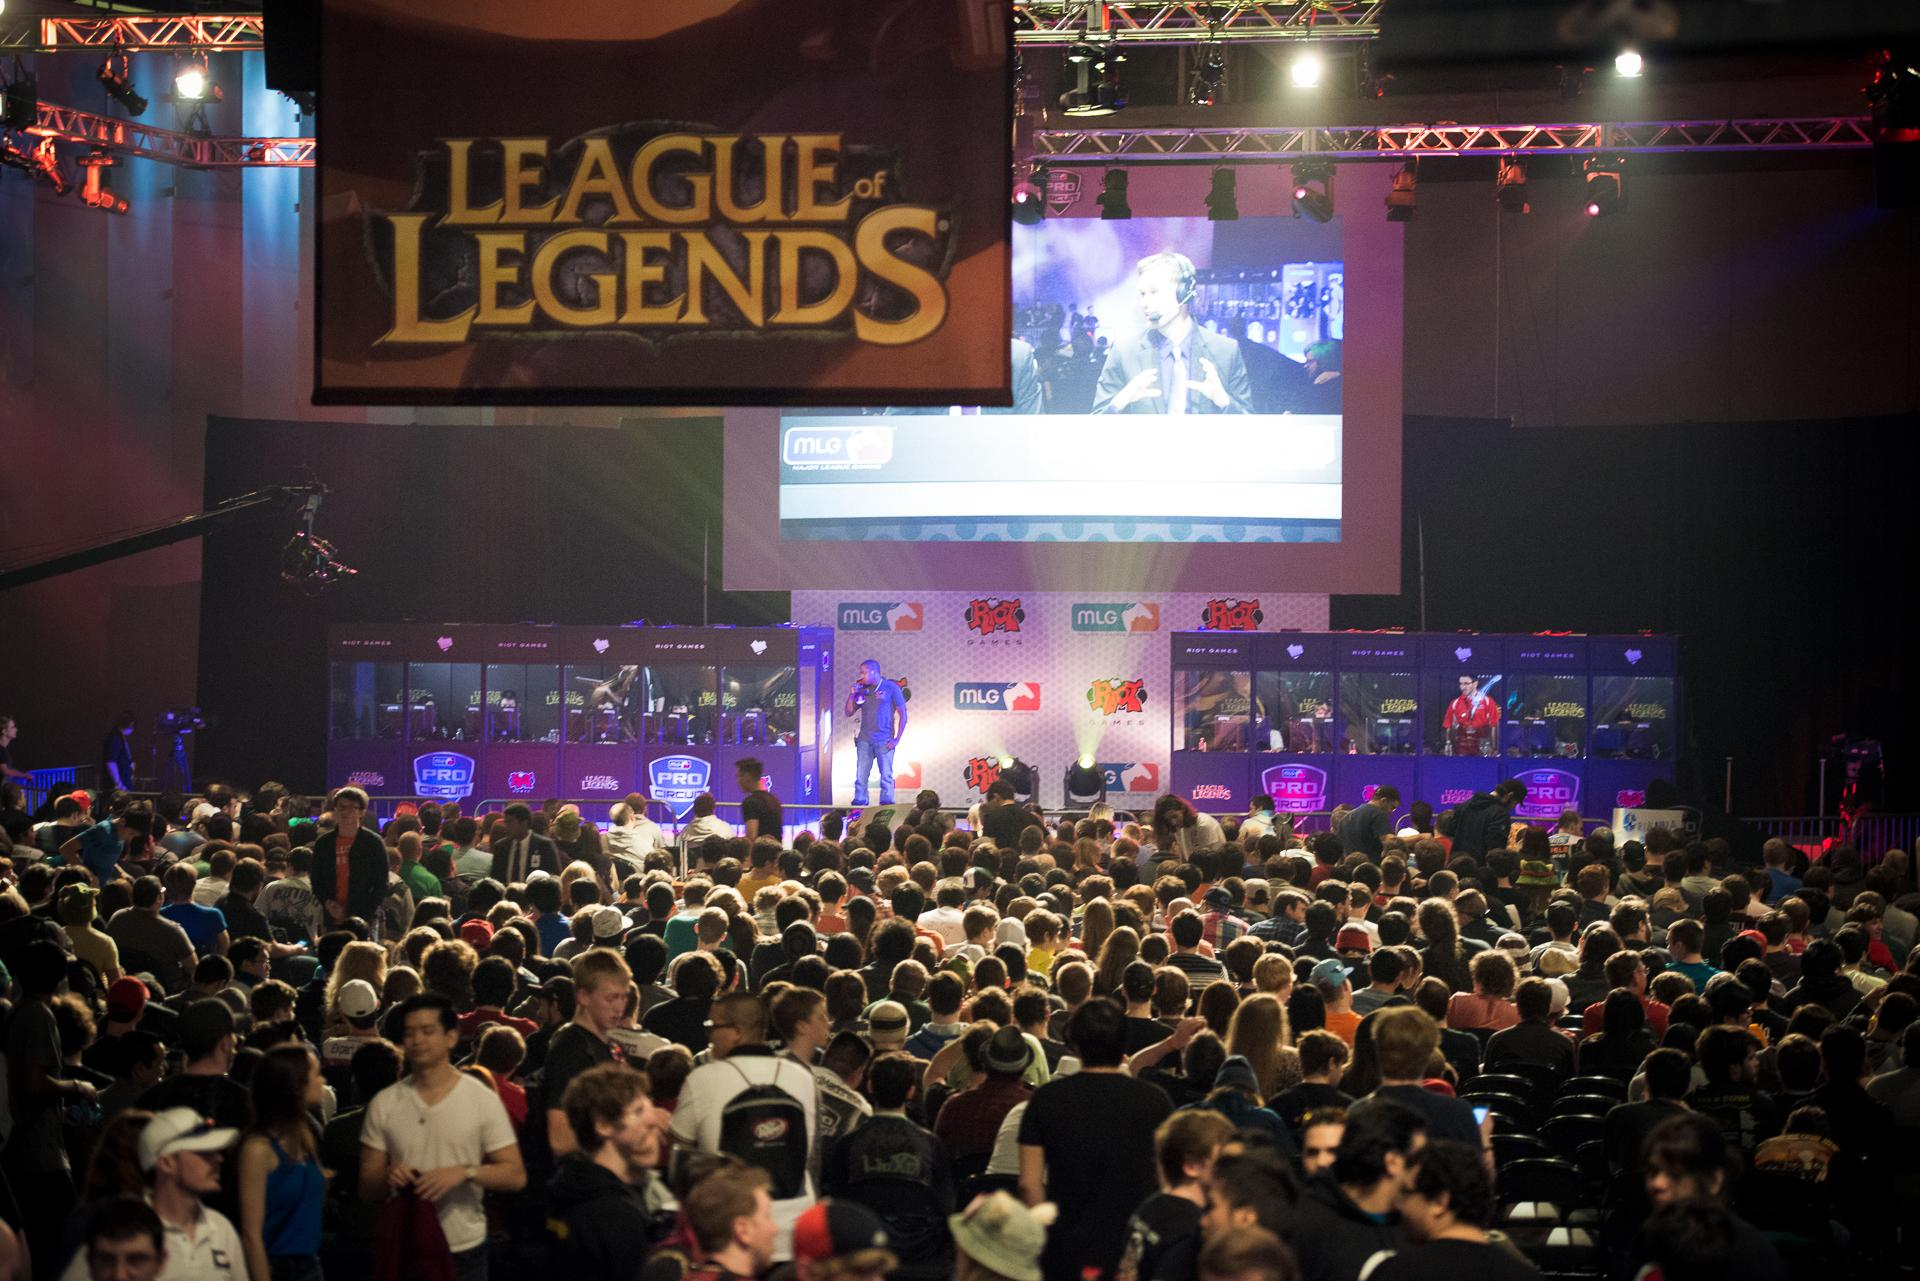 League-of-Legends e-sport